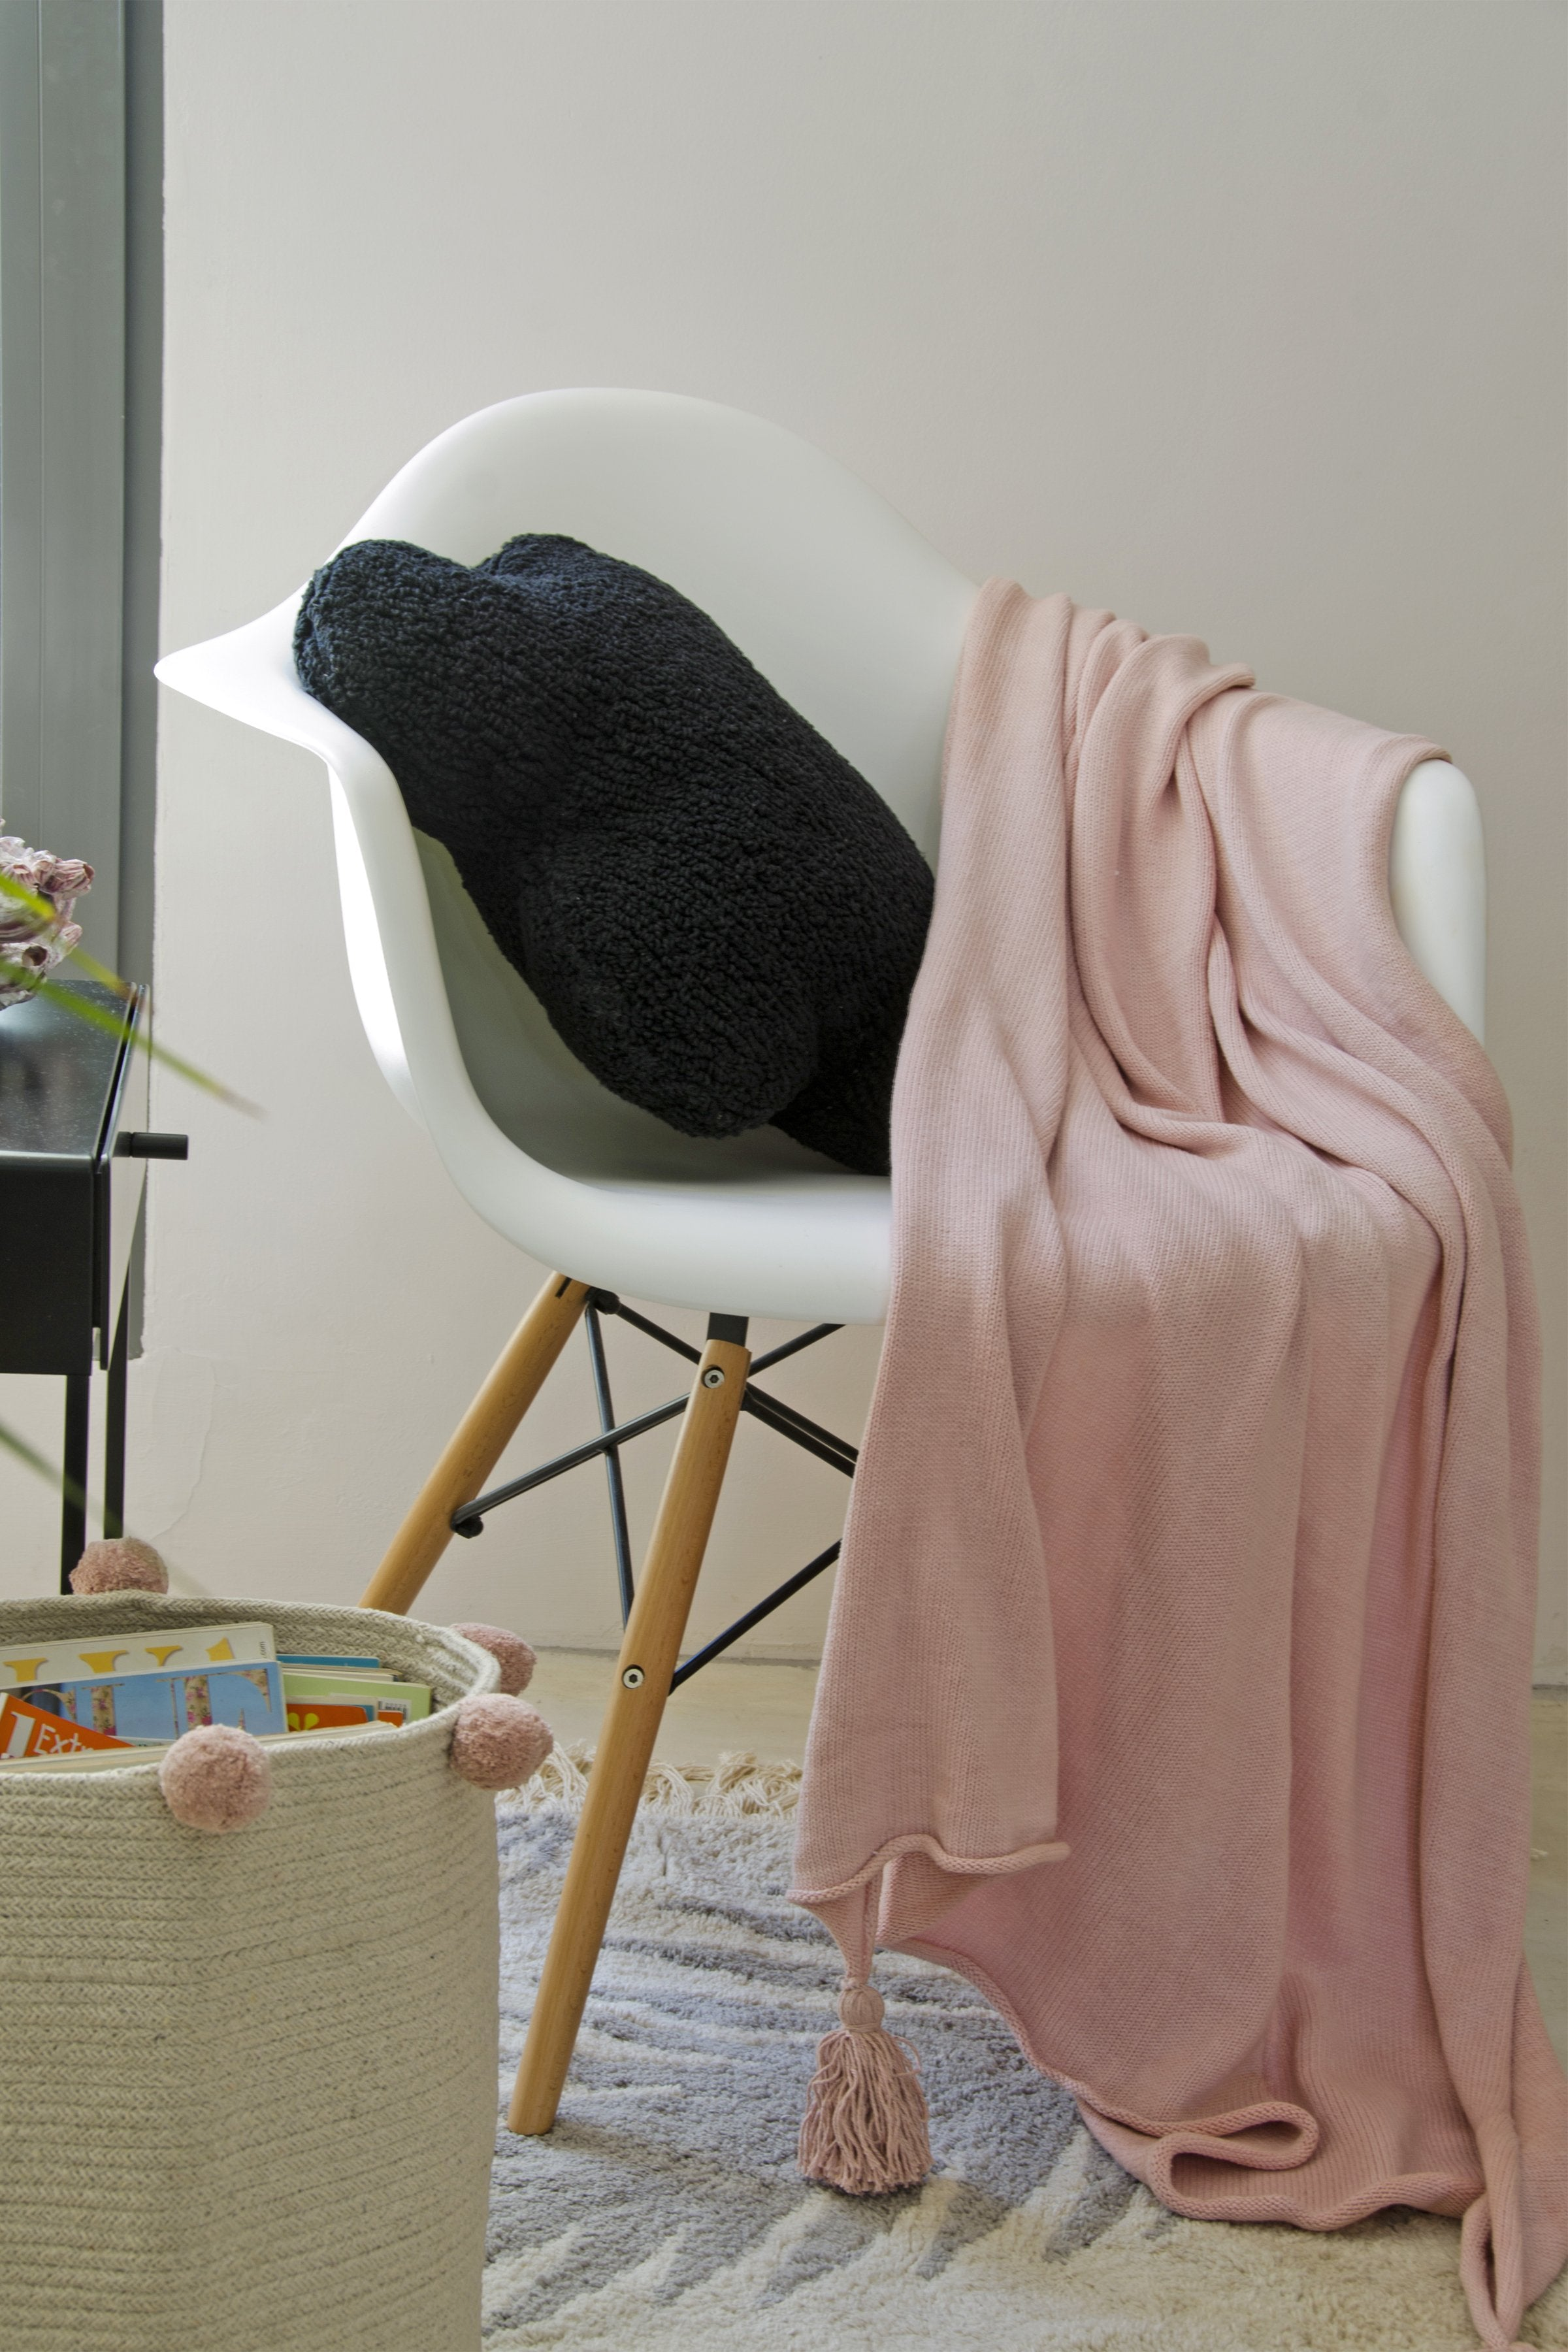 Ombré Blanket in Nude design by Lorena Canals